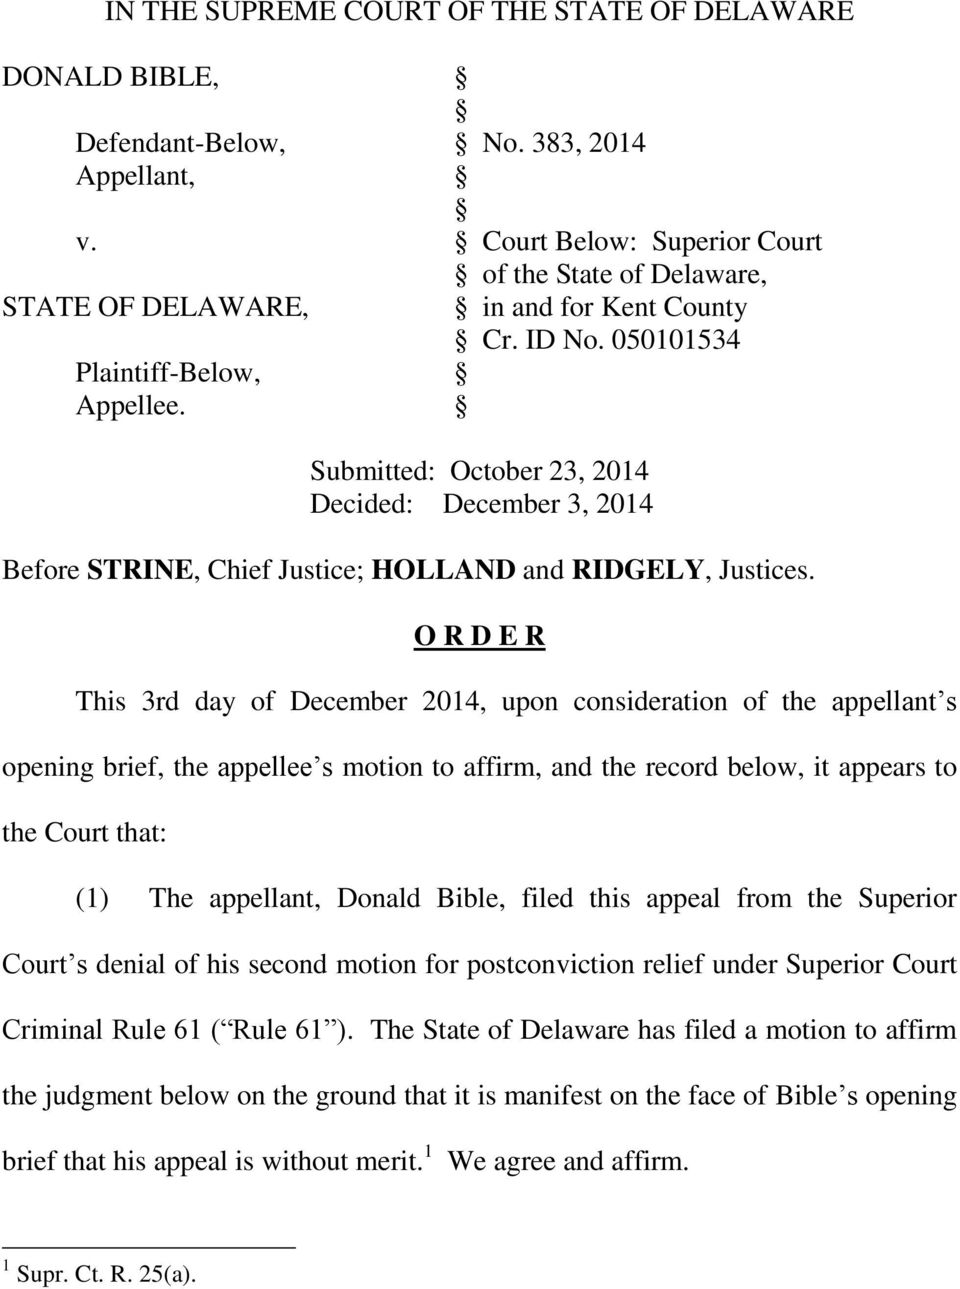 050101534 Submitted: October 23, 2014 Decided: December 3, 2014 Before STRINE, Chief Justice; HOLLAND and RIDGELY, Justices.